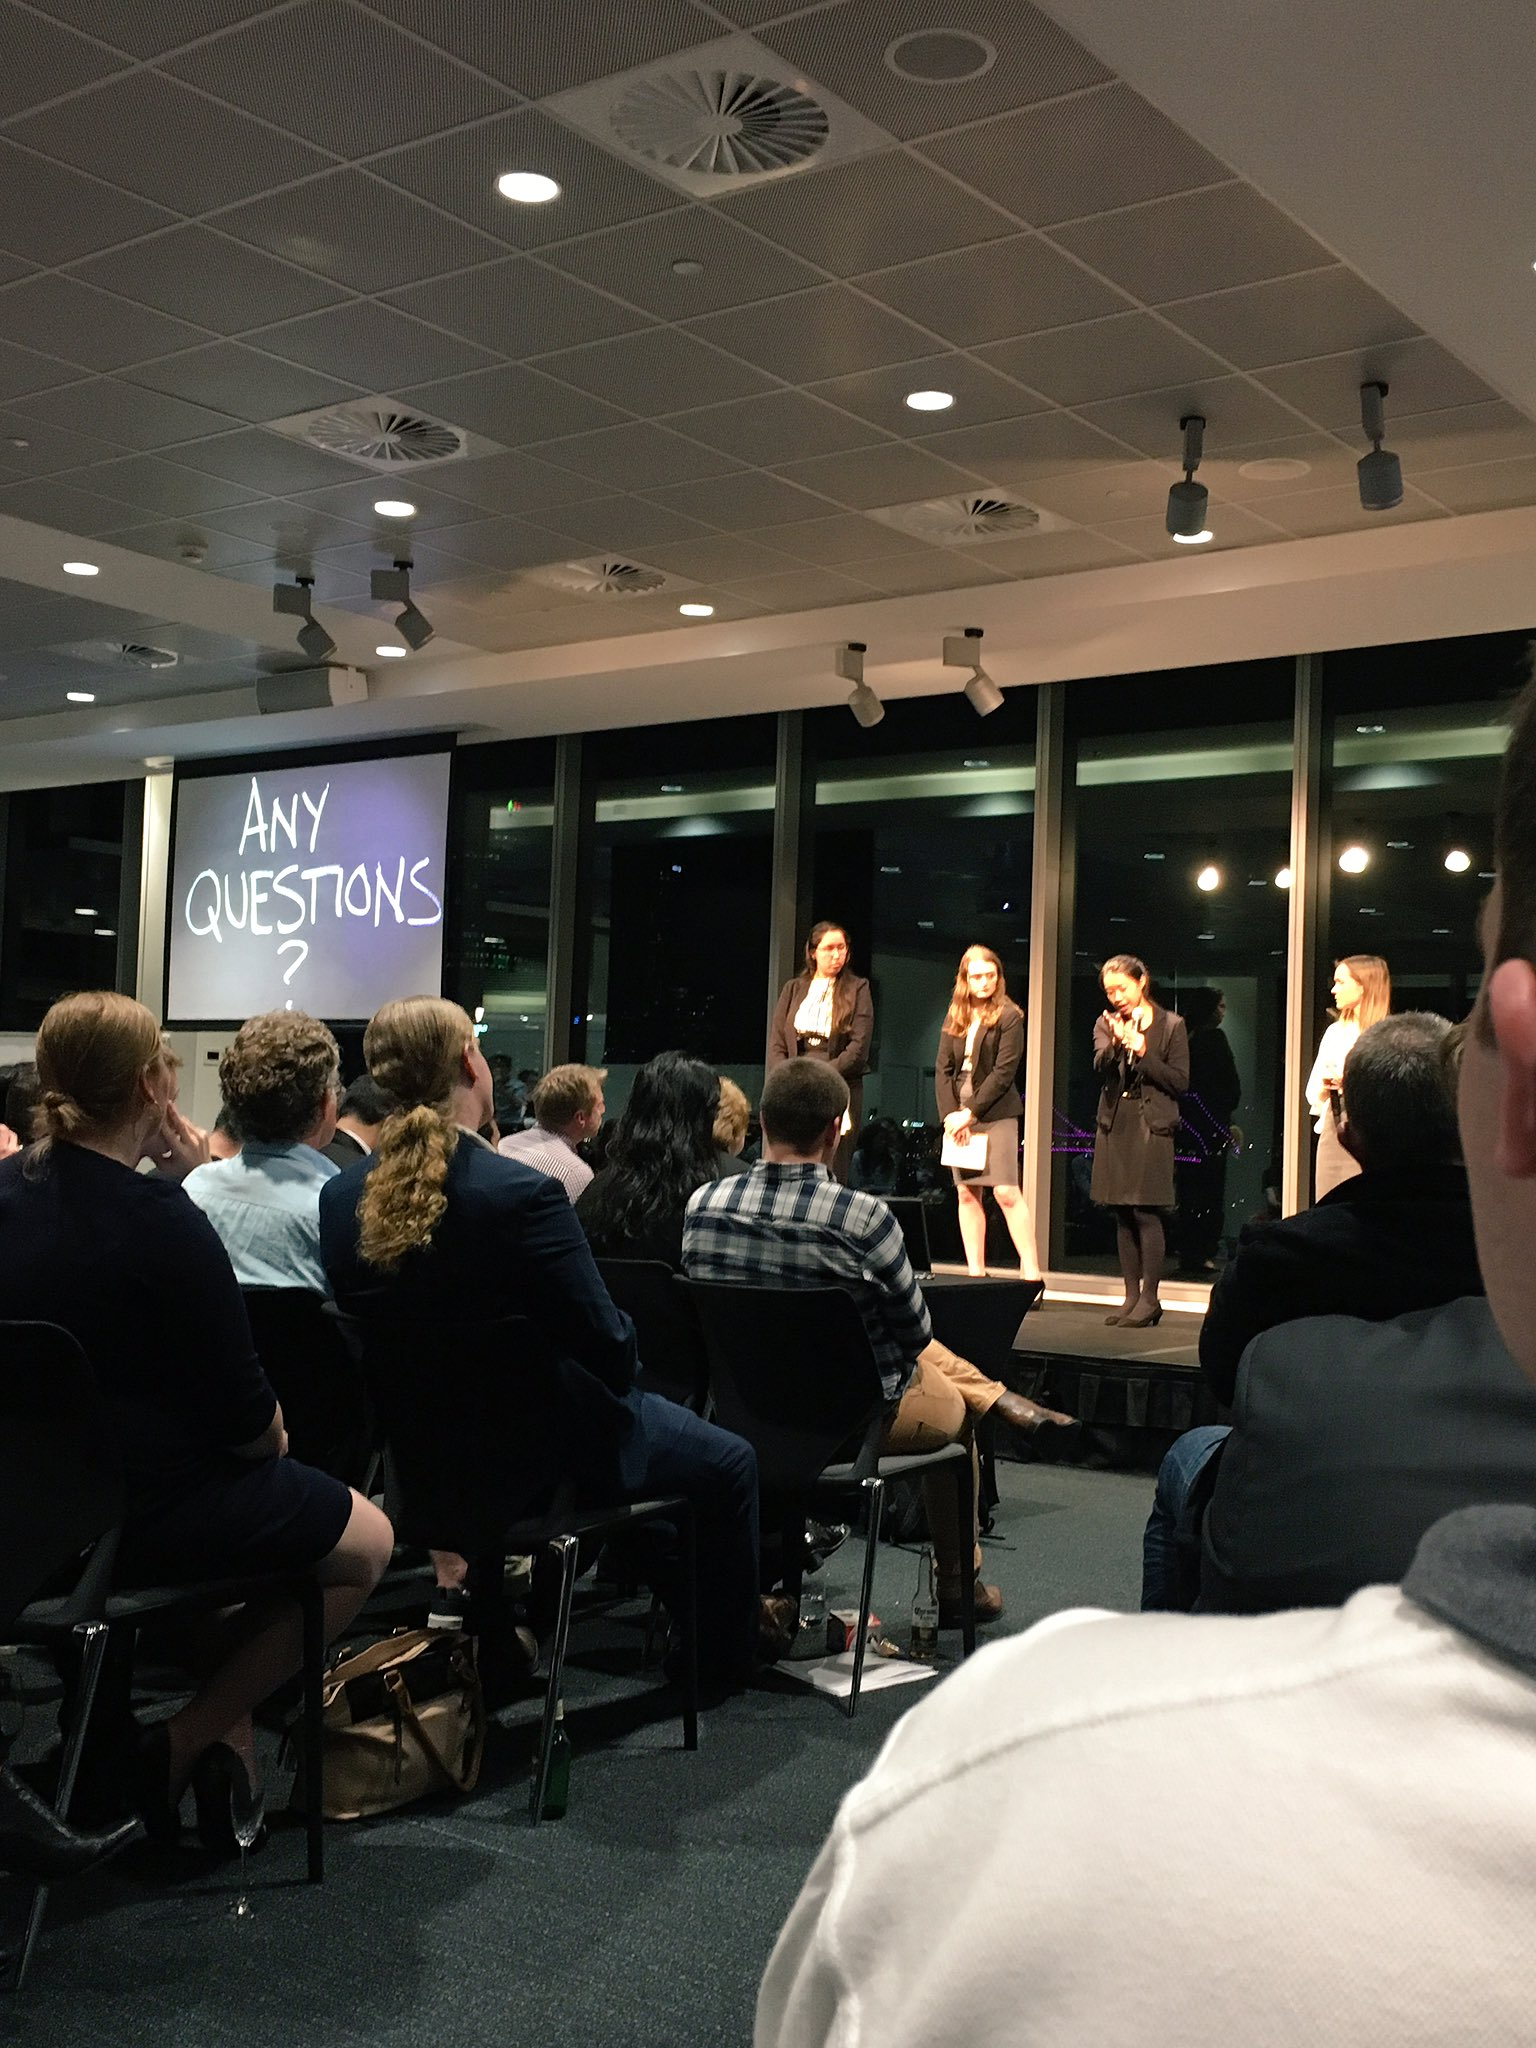 Bravo to the @AllensLegal team- great strategies on how to #innovate the current CPD landscape #DisruptingLaw #Legaltech #auslaw #startupaus https://t.co/r4SWgLheei